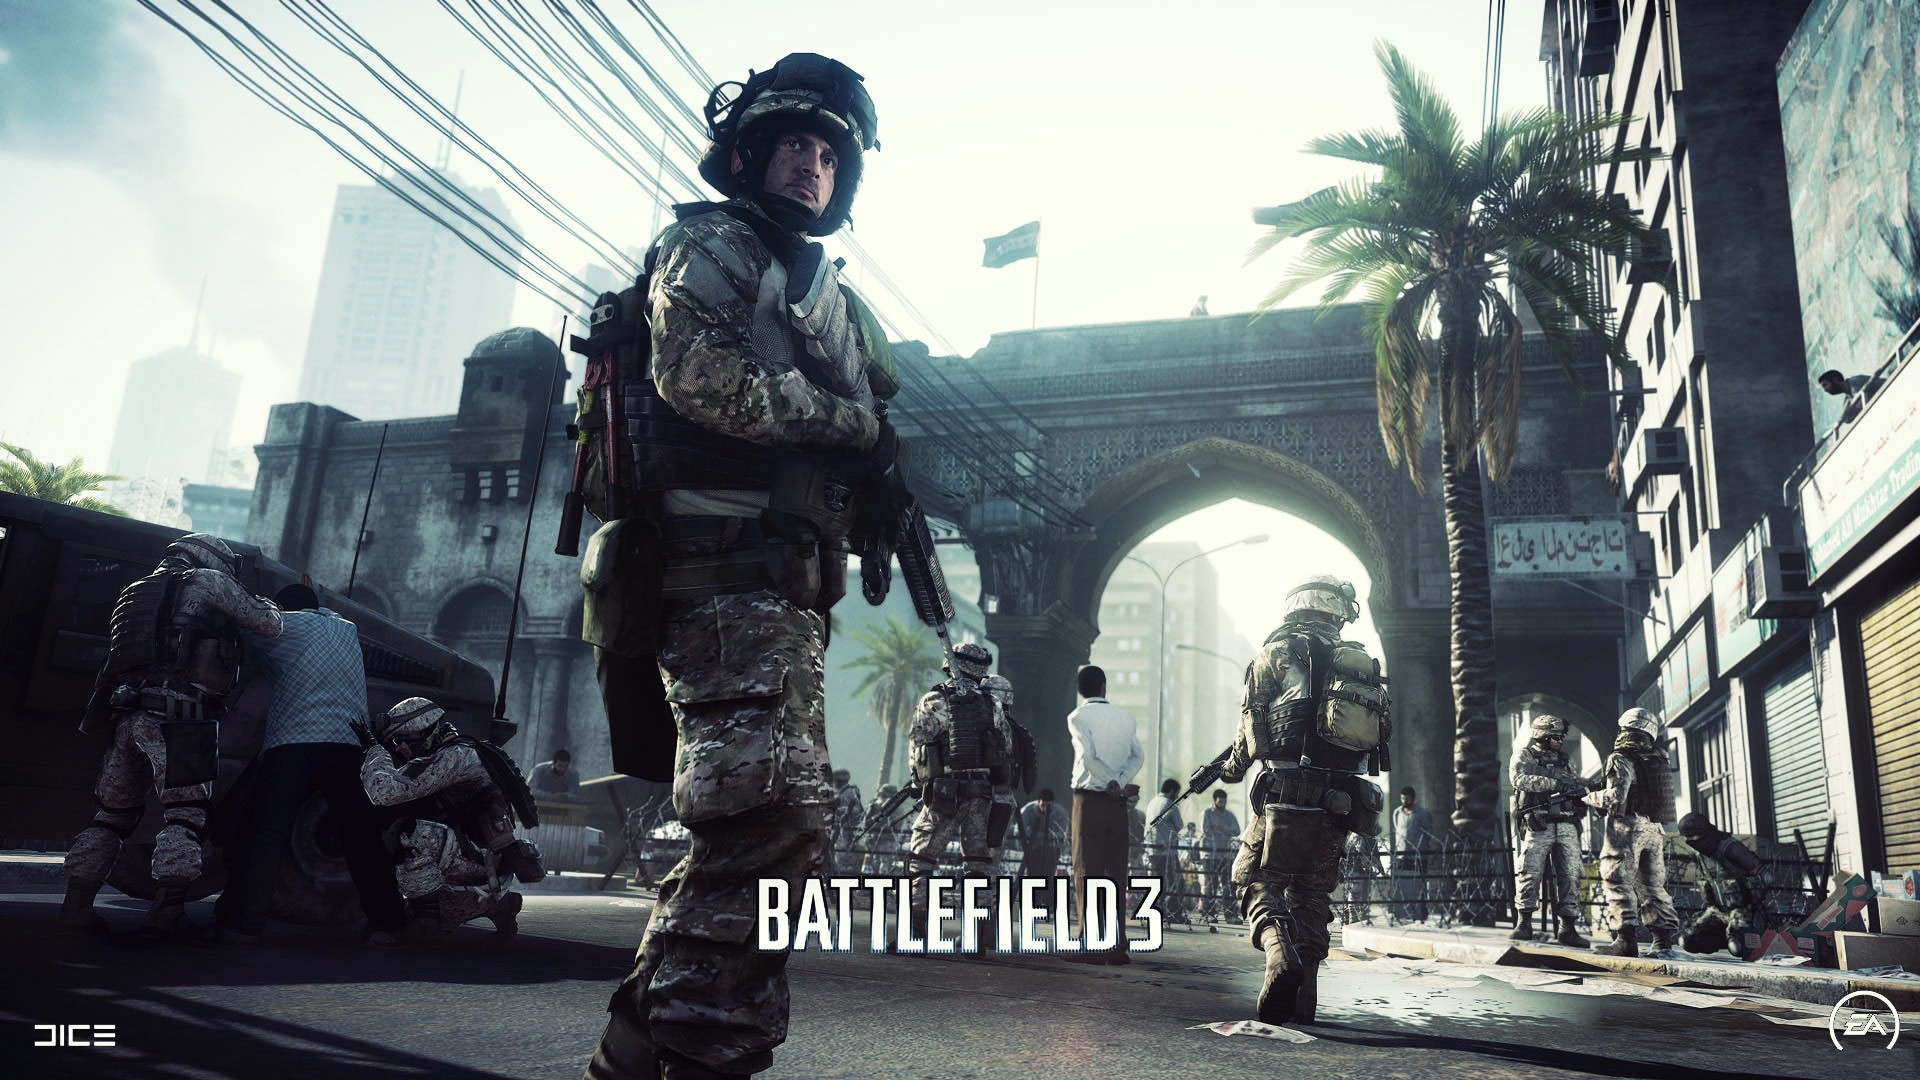 Download wallpaper 1920x1080 battlefield 3 soldiers city battlefield 3 soldiers city voltagebd Images